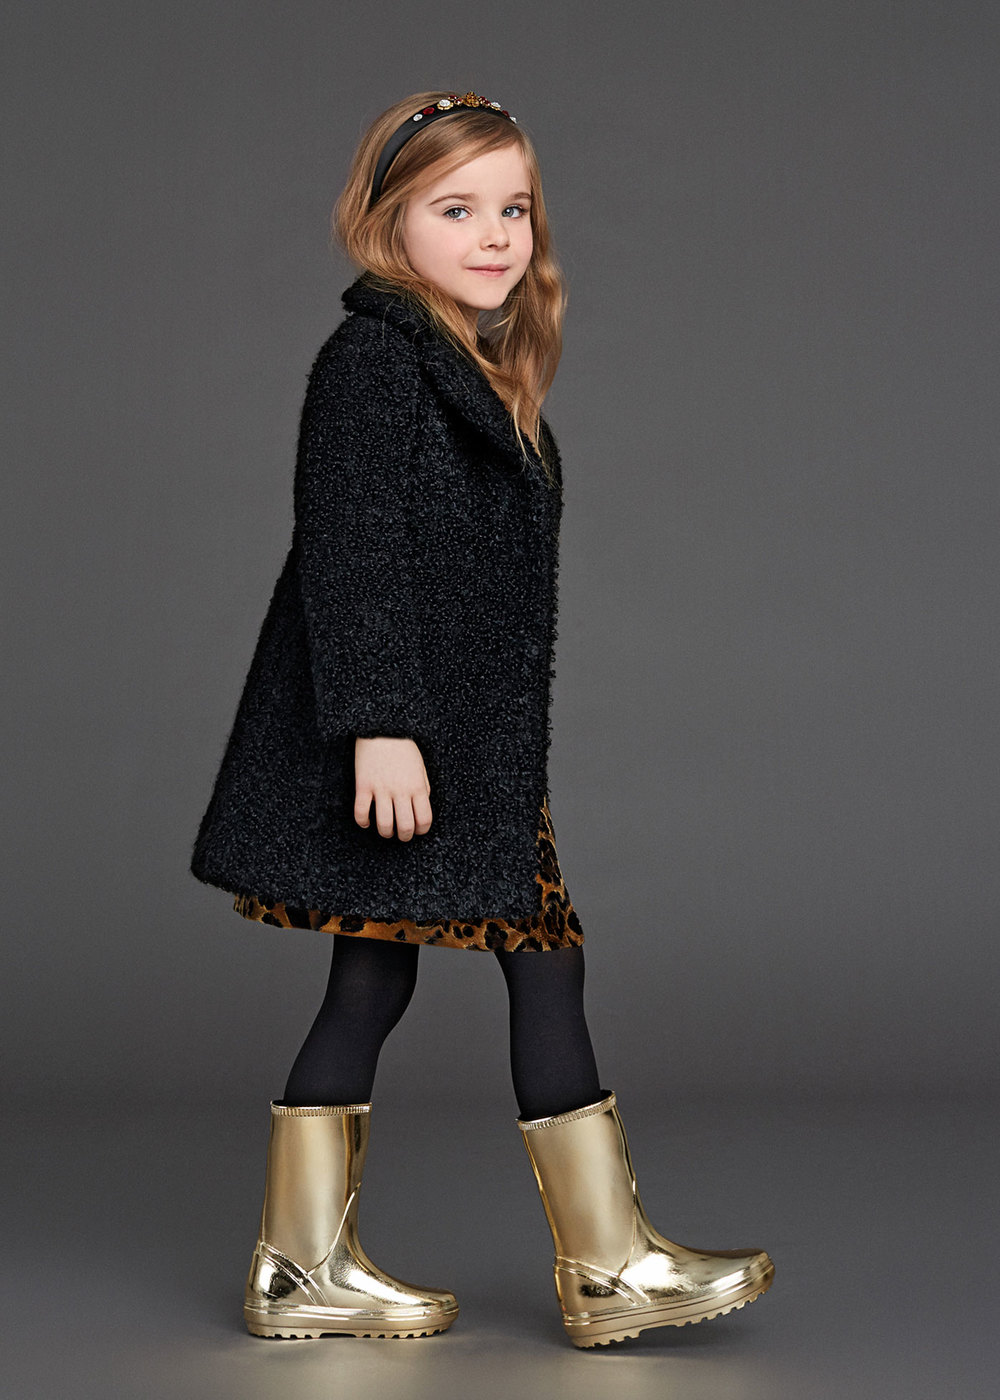 dolce-and-gabbana-winter-2016-child-collection-27-zoom.jpg